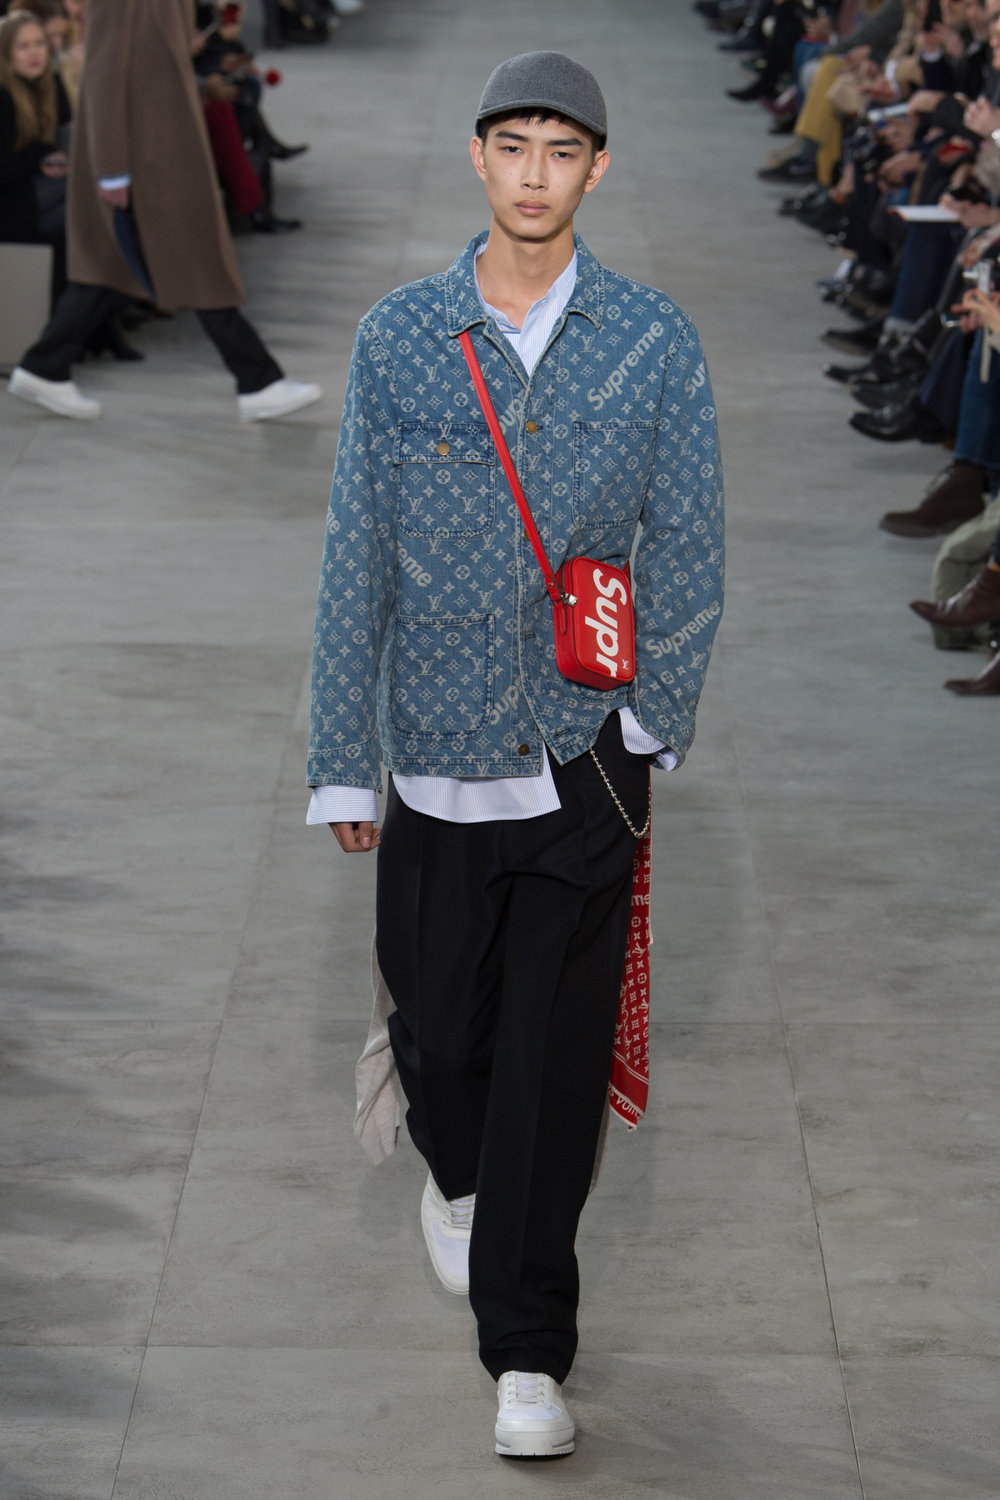 louis_vuitton_look_12_2017_aw_mens.jpeg